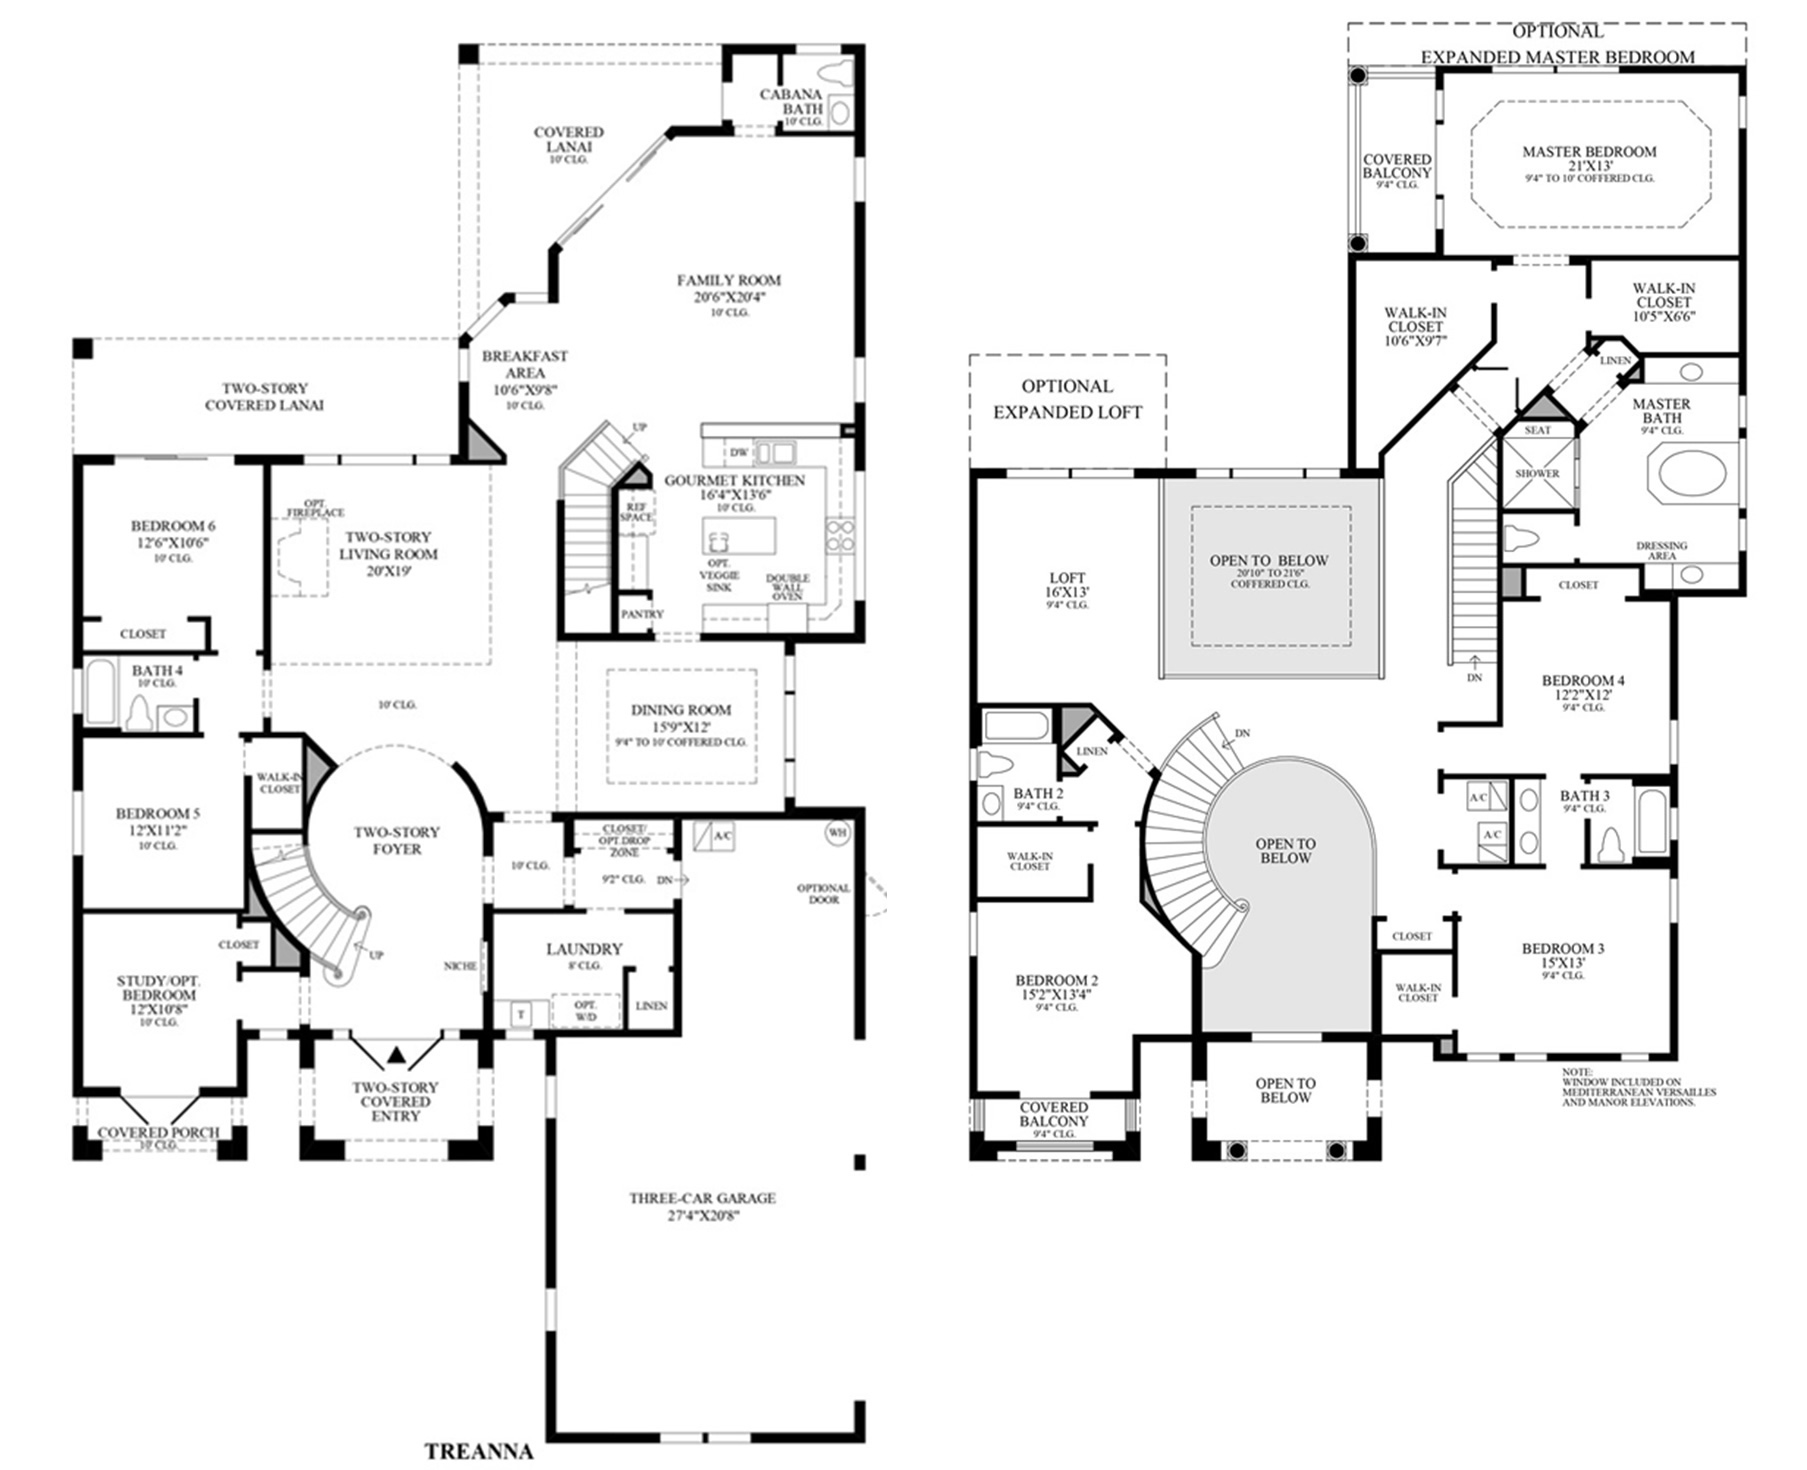 Toll Brothers Carlsbad Floor Plan: Bellaria Windermere, FL 34786 Real Estate & Homes For Sale